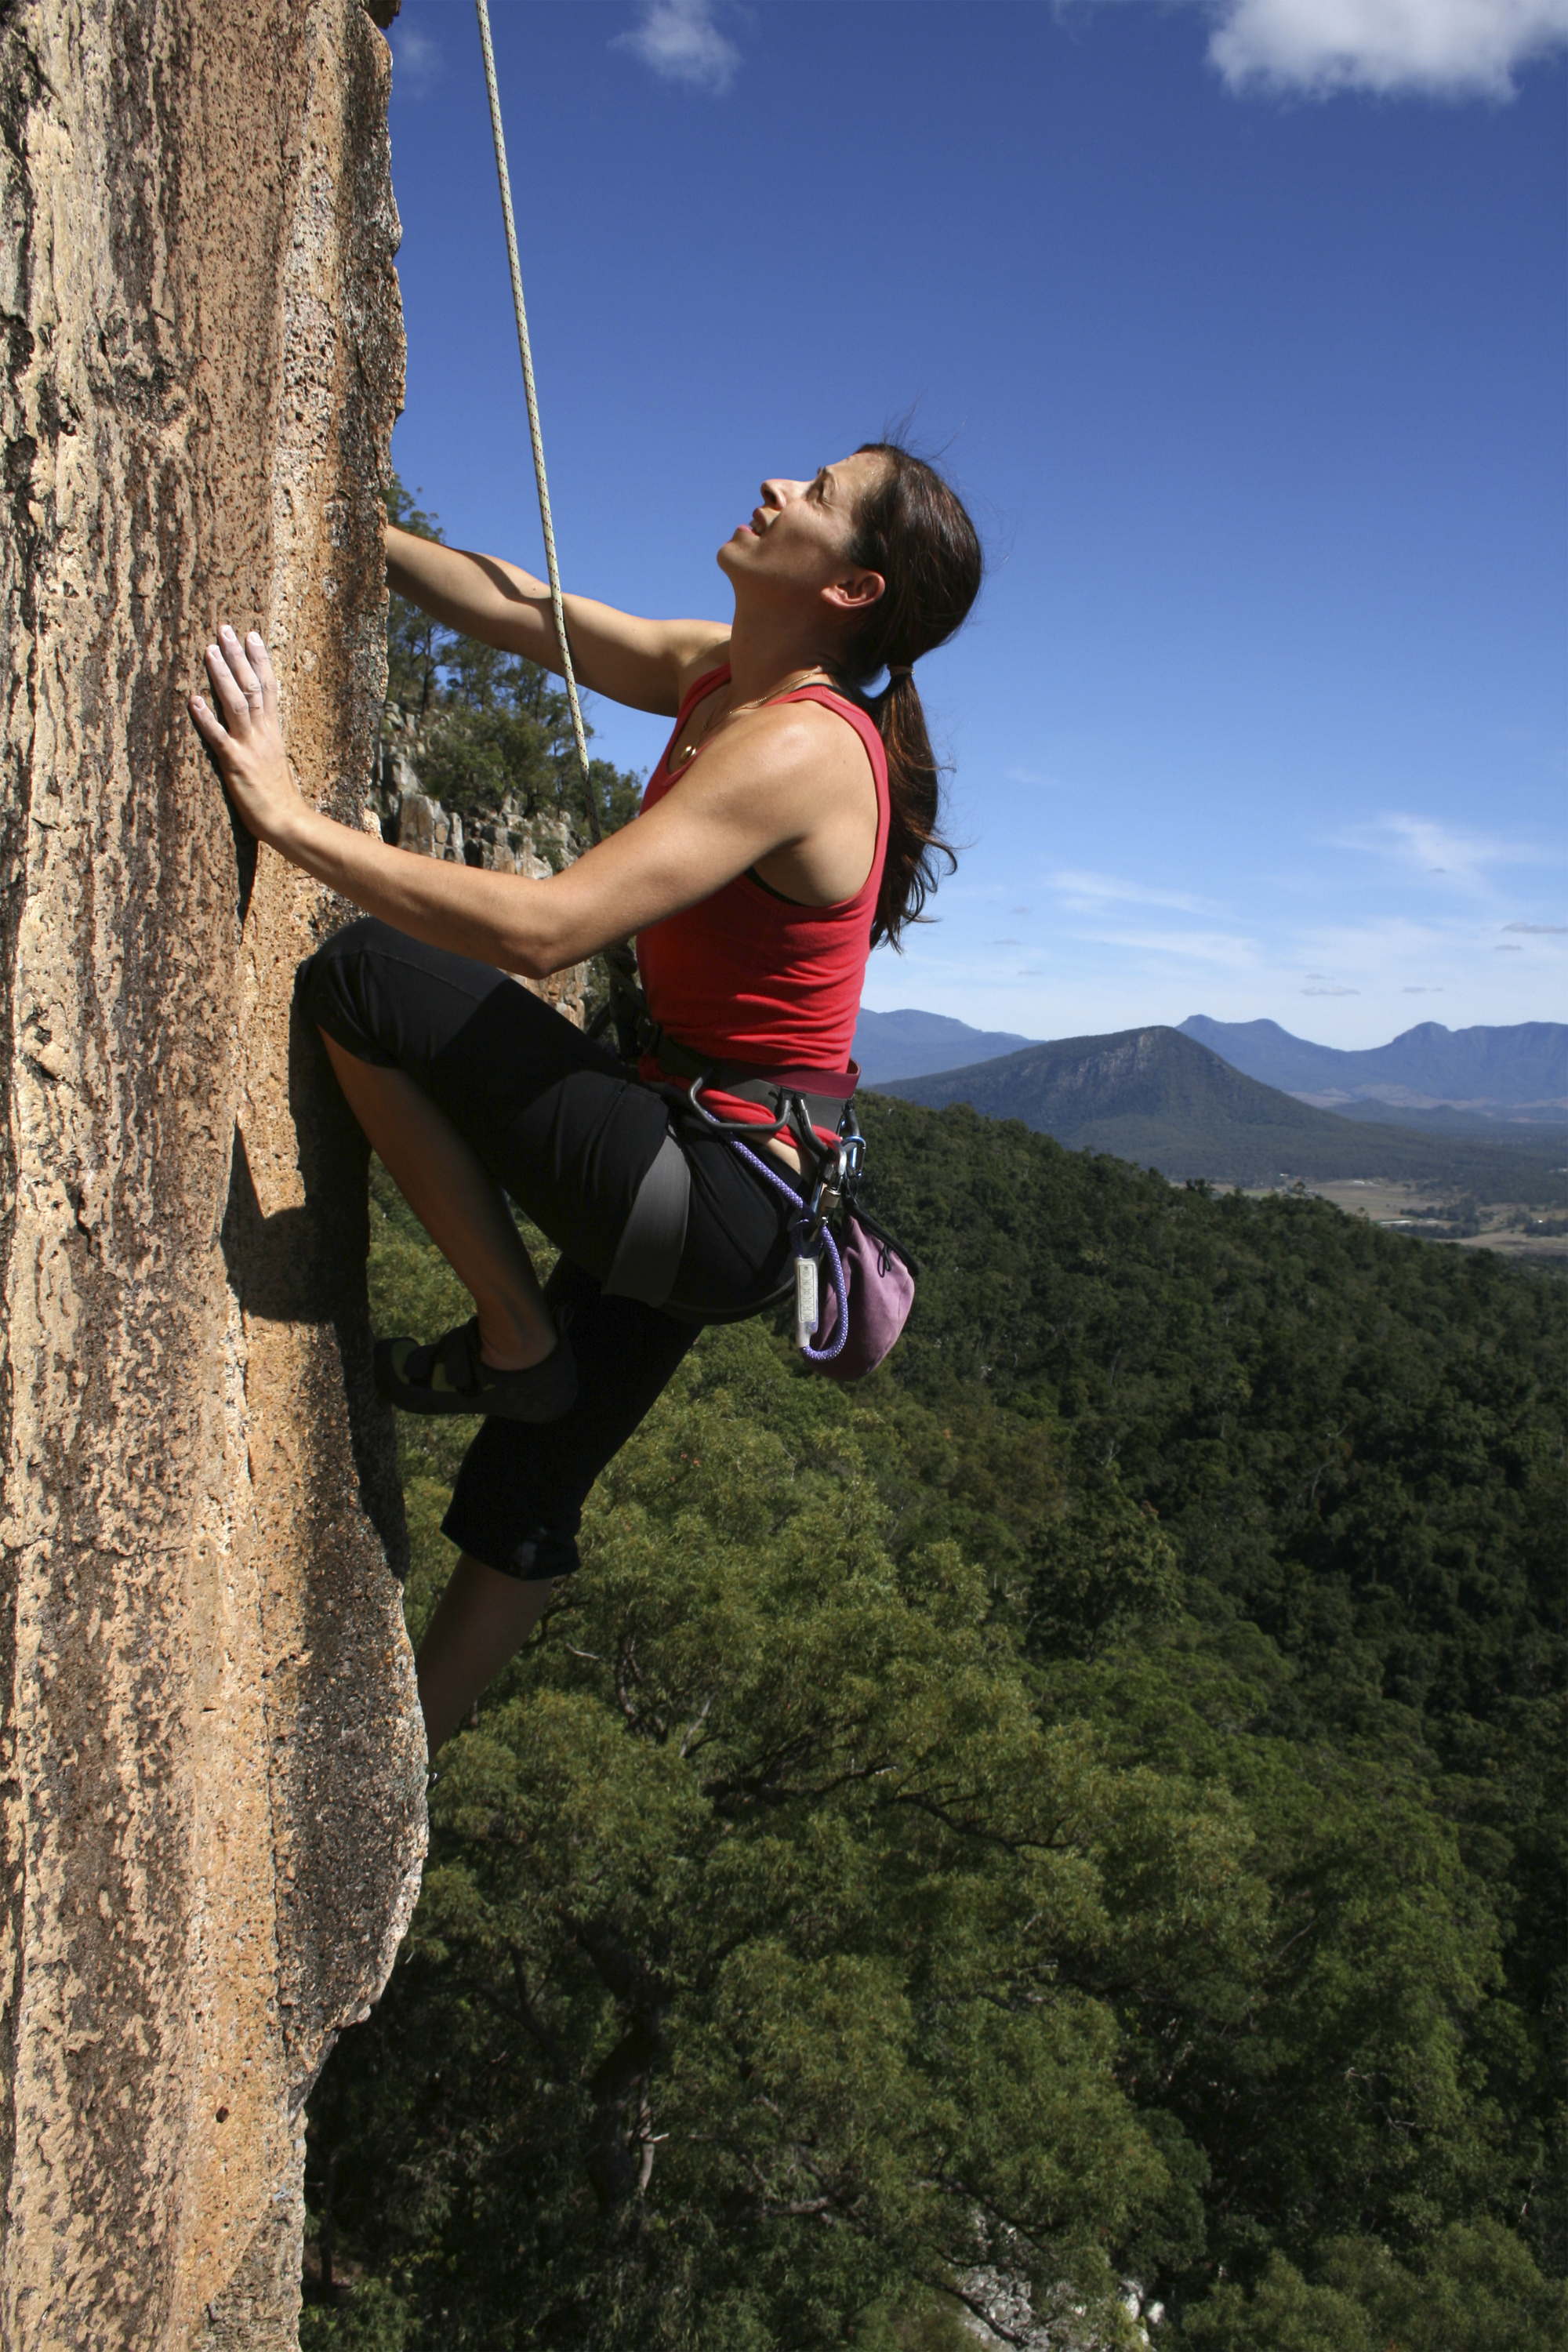 Go Outdoor Rock Climbing | POPSUGAR Fitness